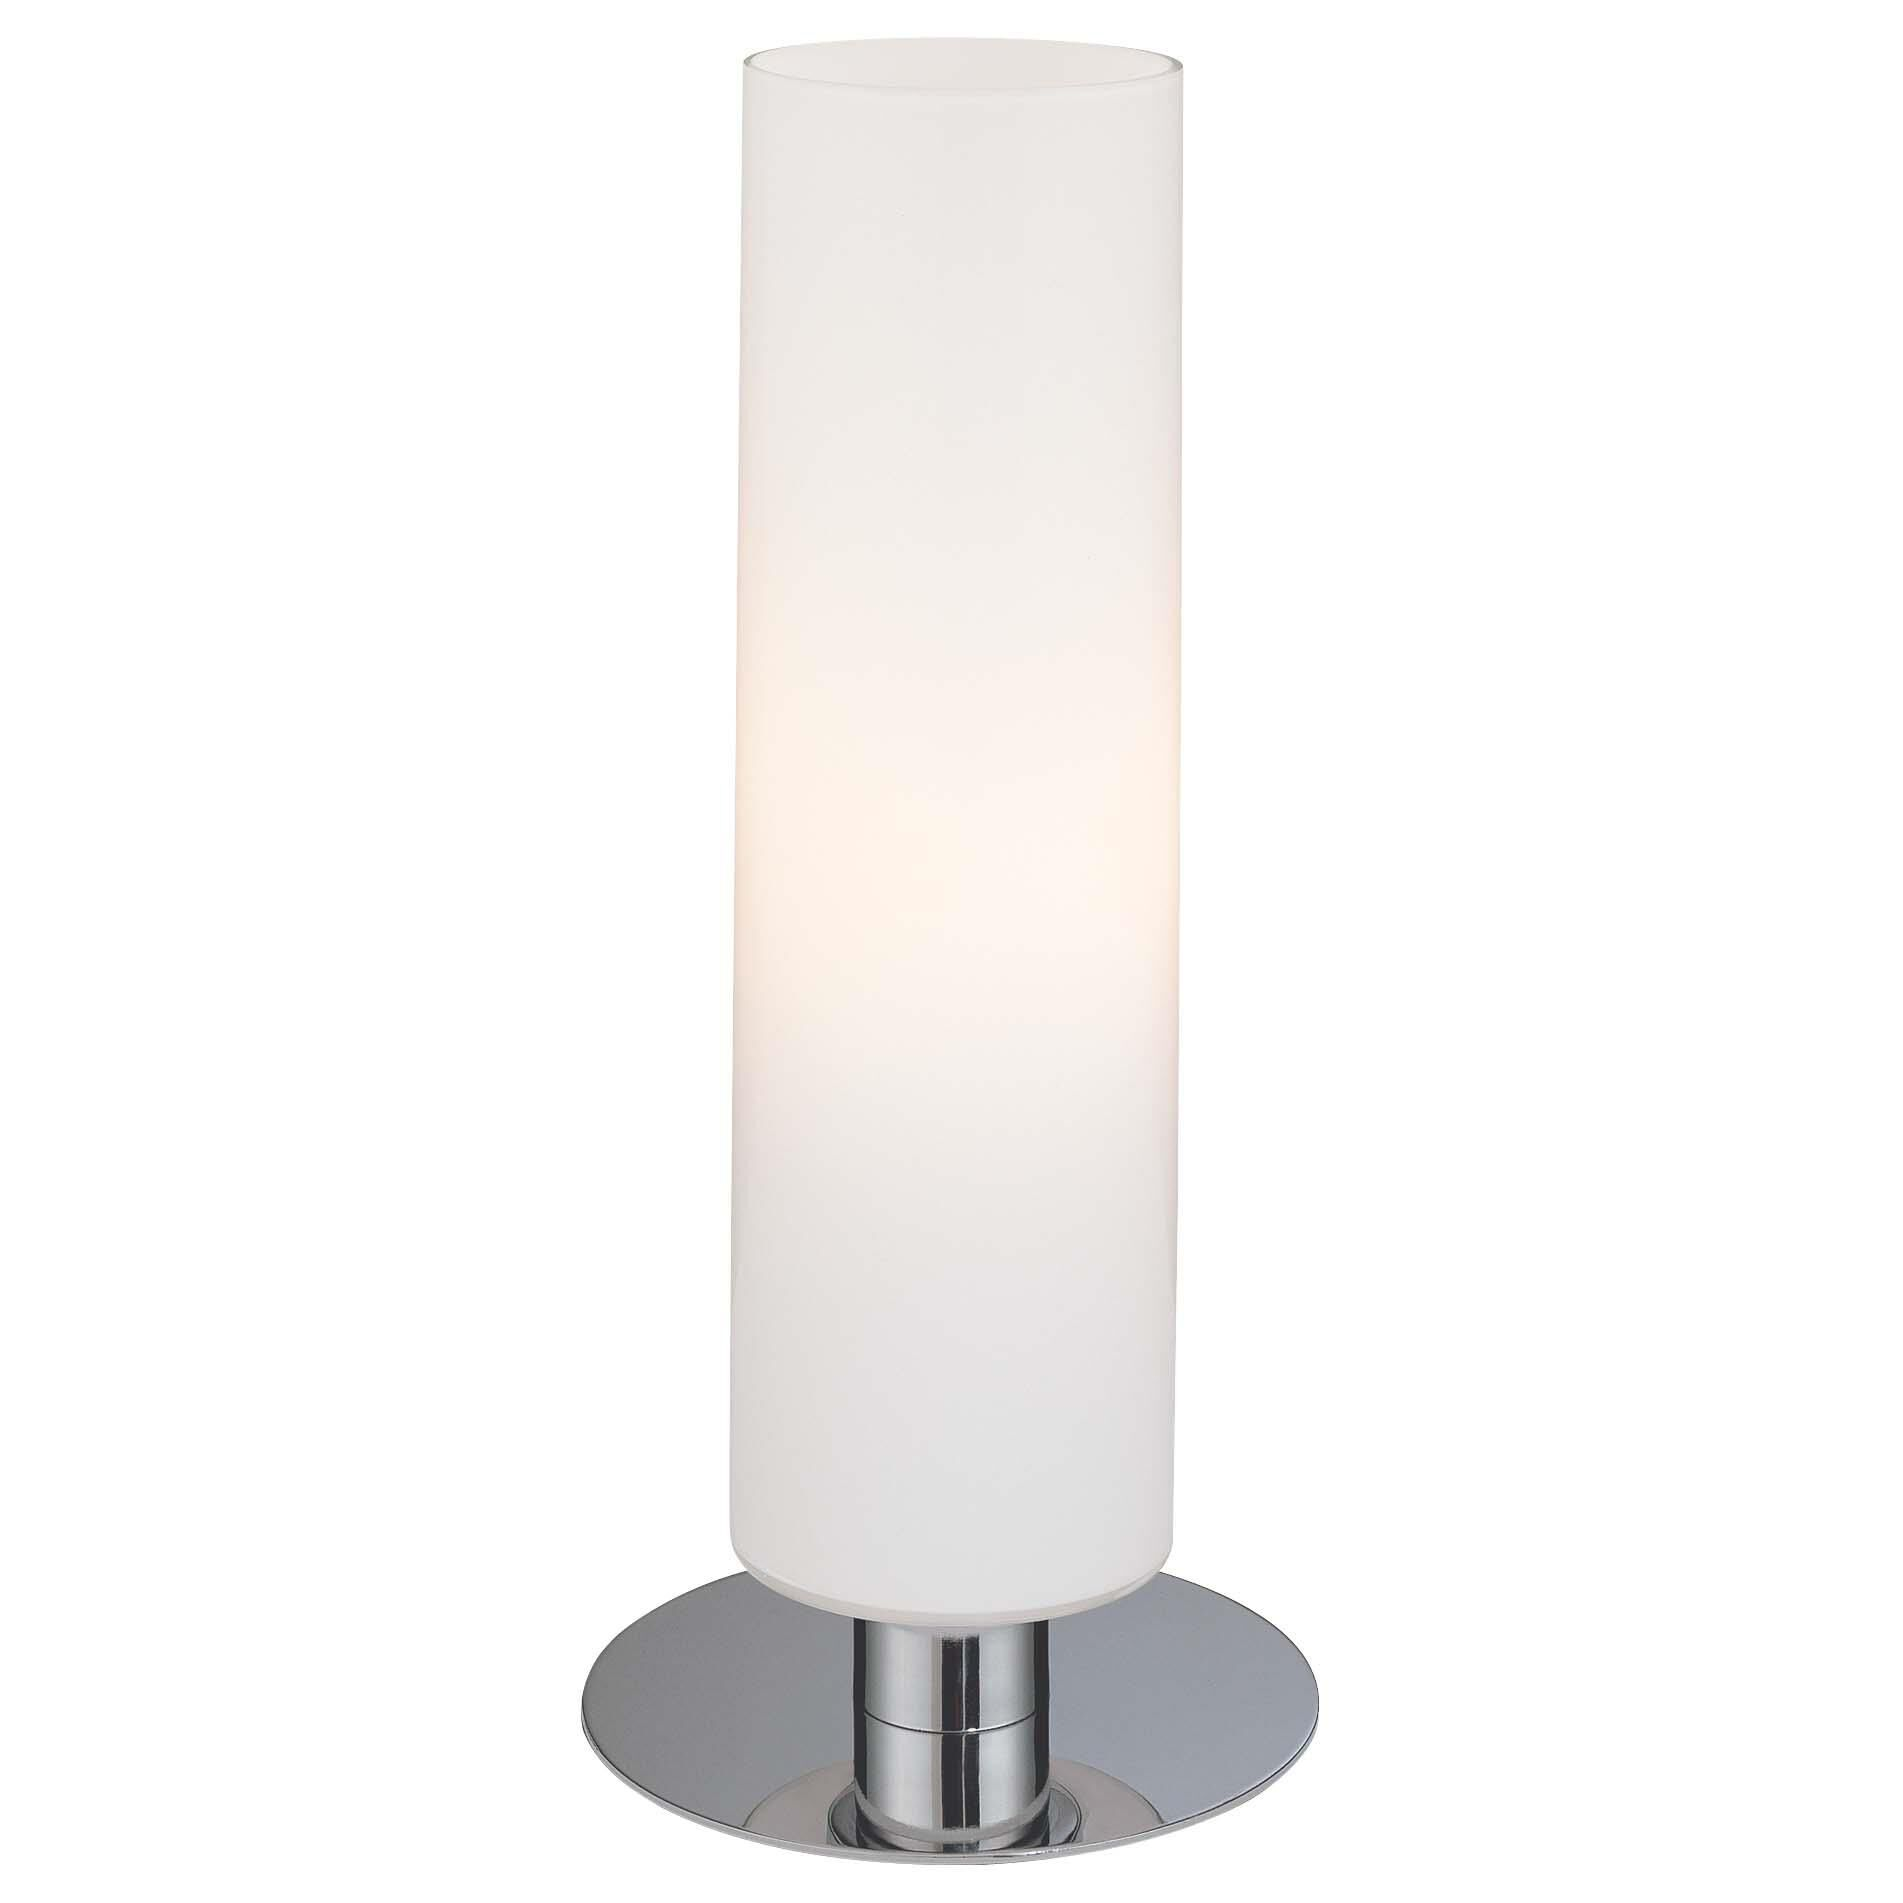 Kovacs Kamila 13 Inch Accent Lamp Kamila - P661-077 - Transitional